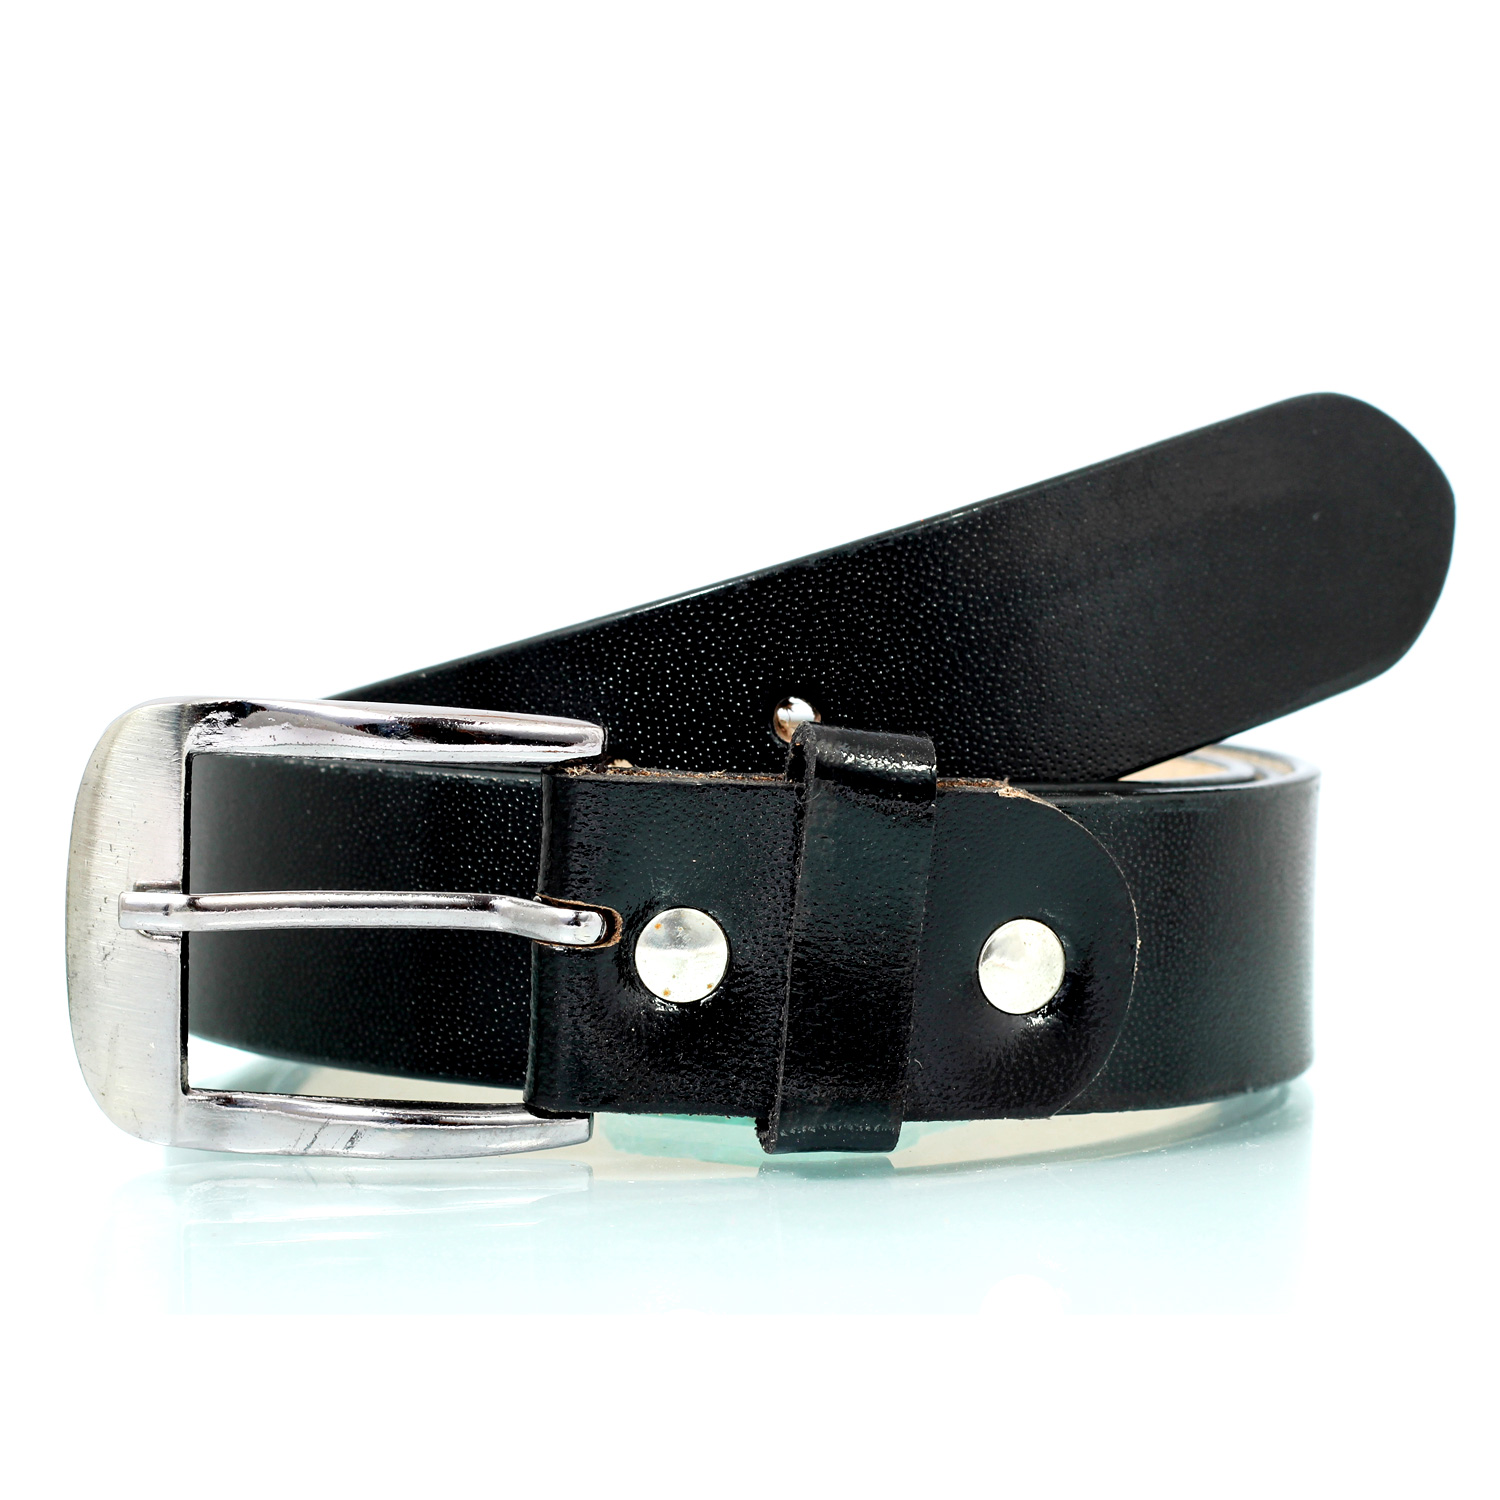 Drazekraft beautifully designed simple formal black leather belt for men